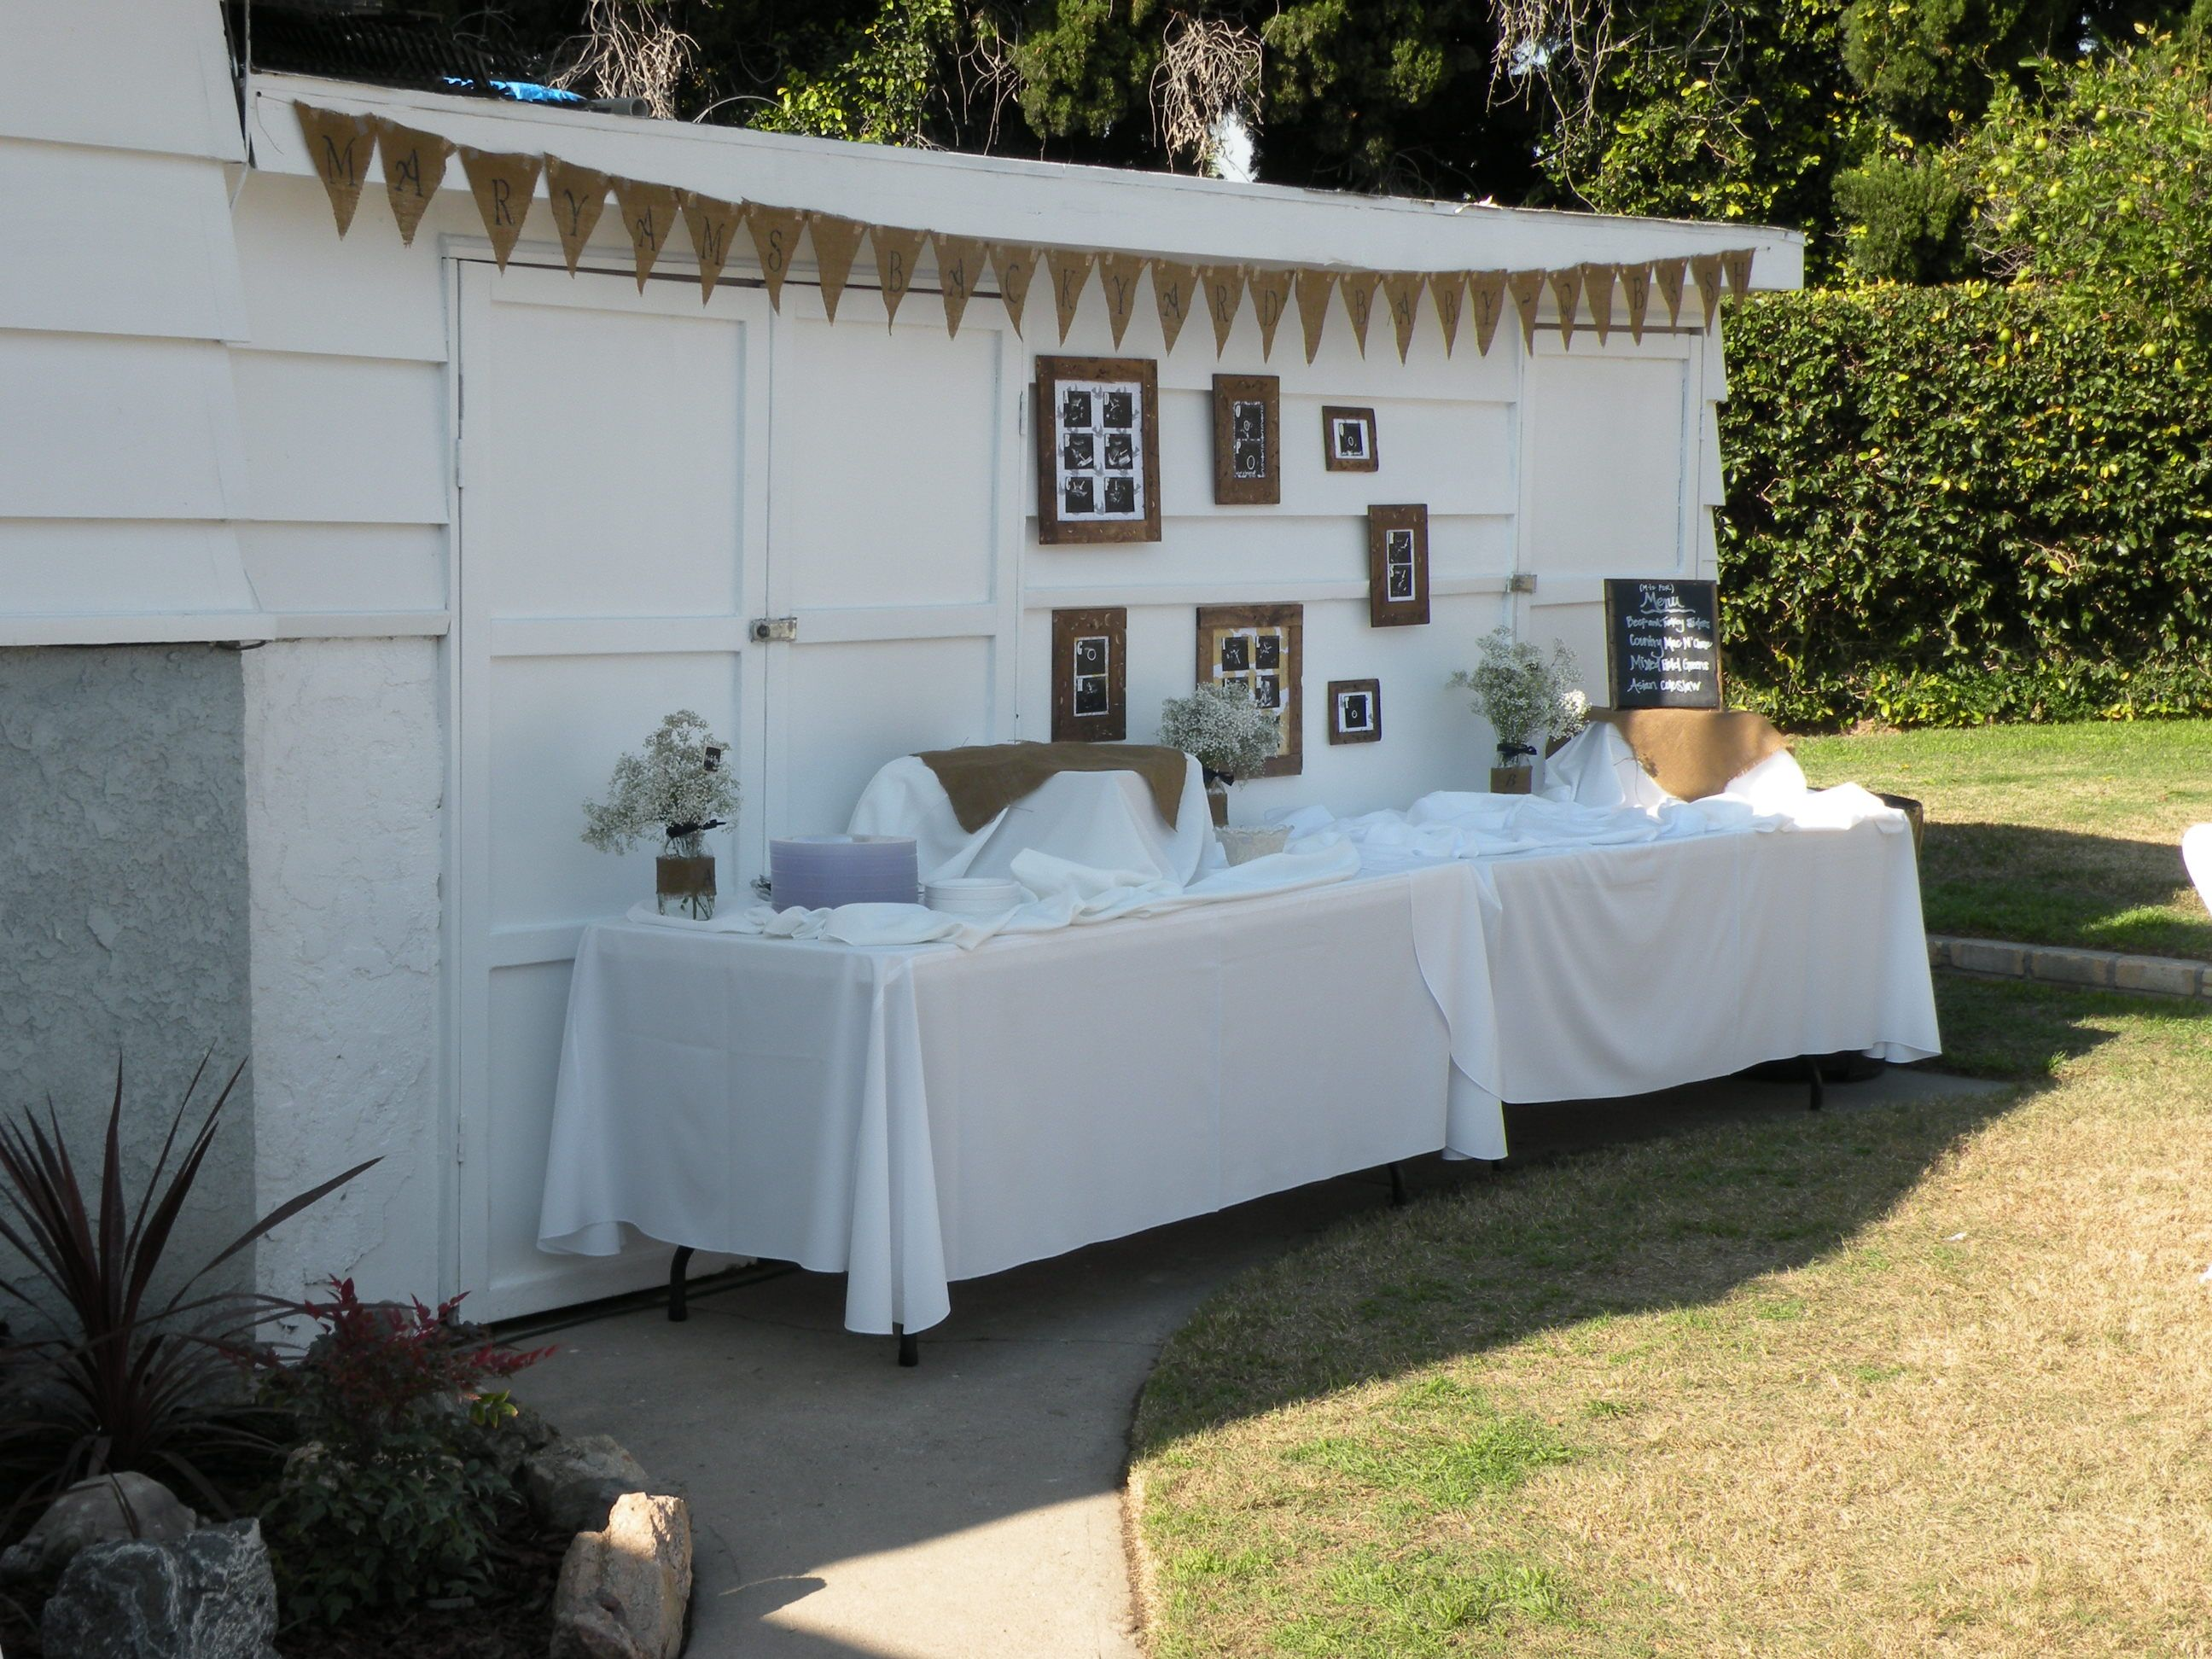 Rustic Baby Shower: Backyard Baby-Q Bash: Ultrasound game over Buffet Tables